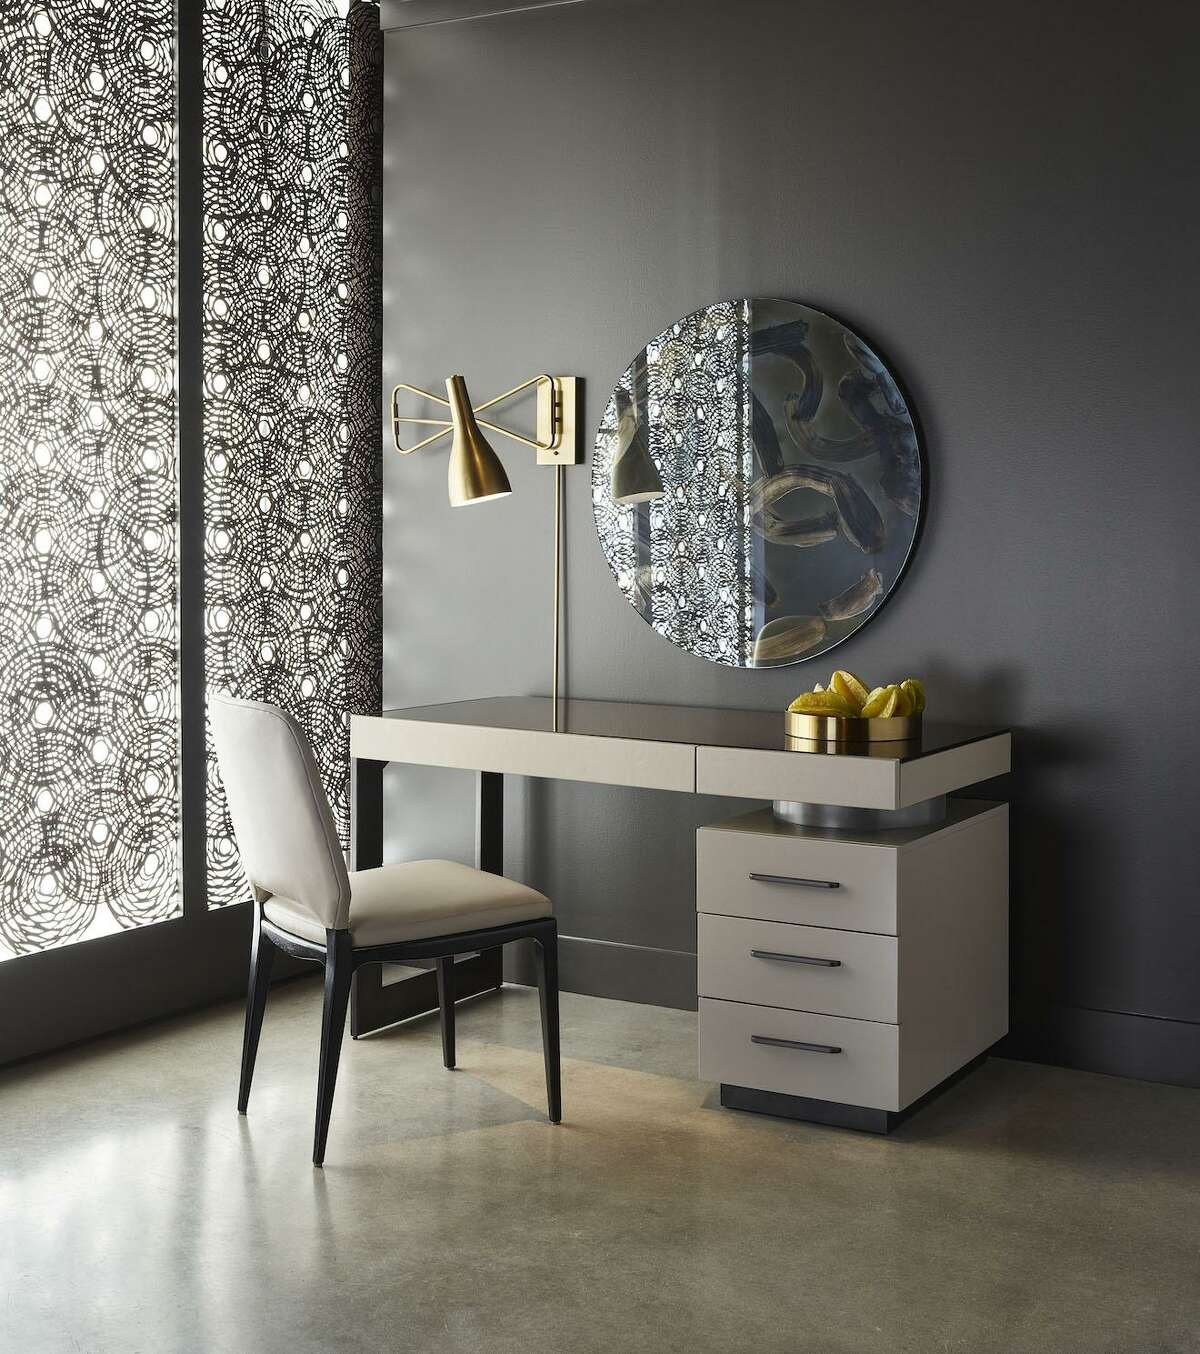 This writing desk is part of the Nina Magon for Universal Furniture: A Design Collaboration. Magon is the creative director and founder of the Houston-based Contour Interior Design firm. Her new European modern furniture collection launched April 6, 2019, at the High Point, N.C., Furniture Market.